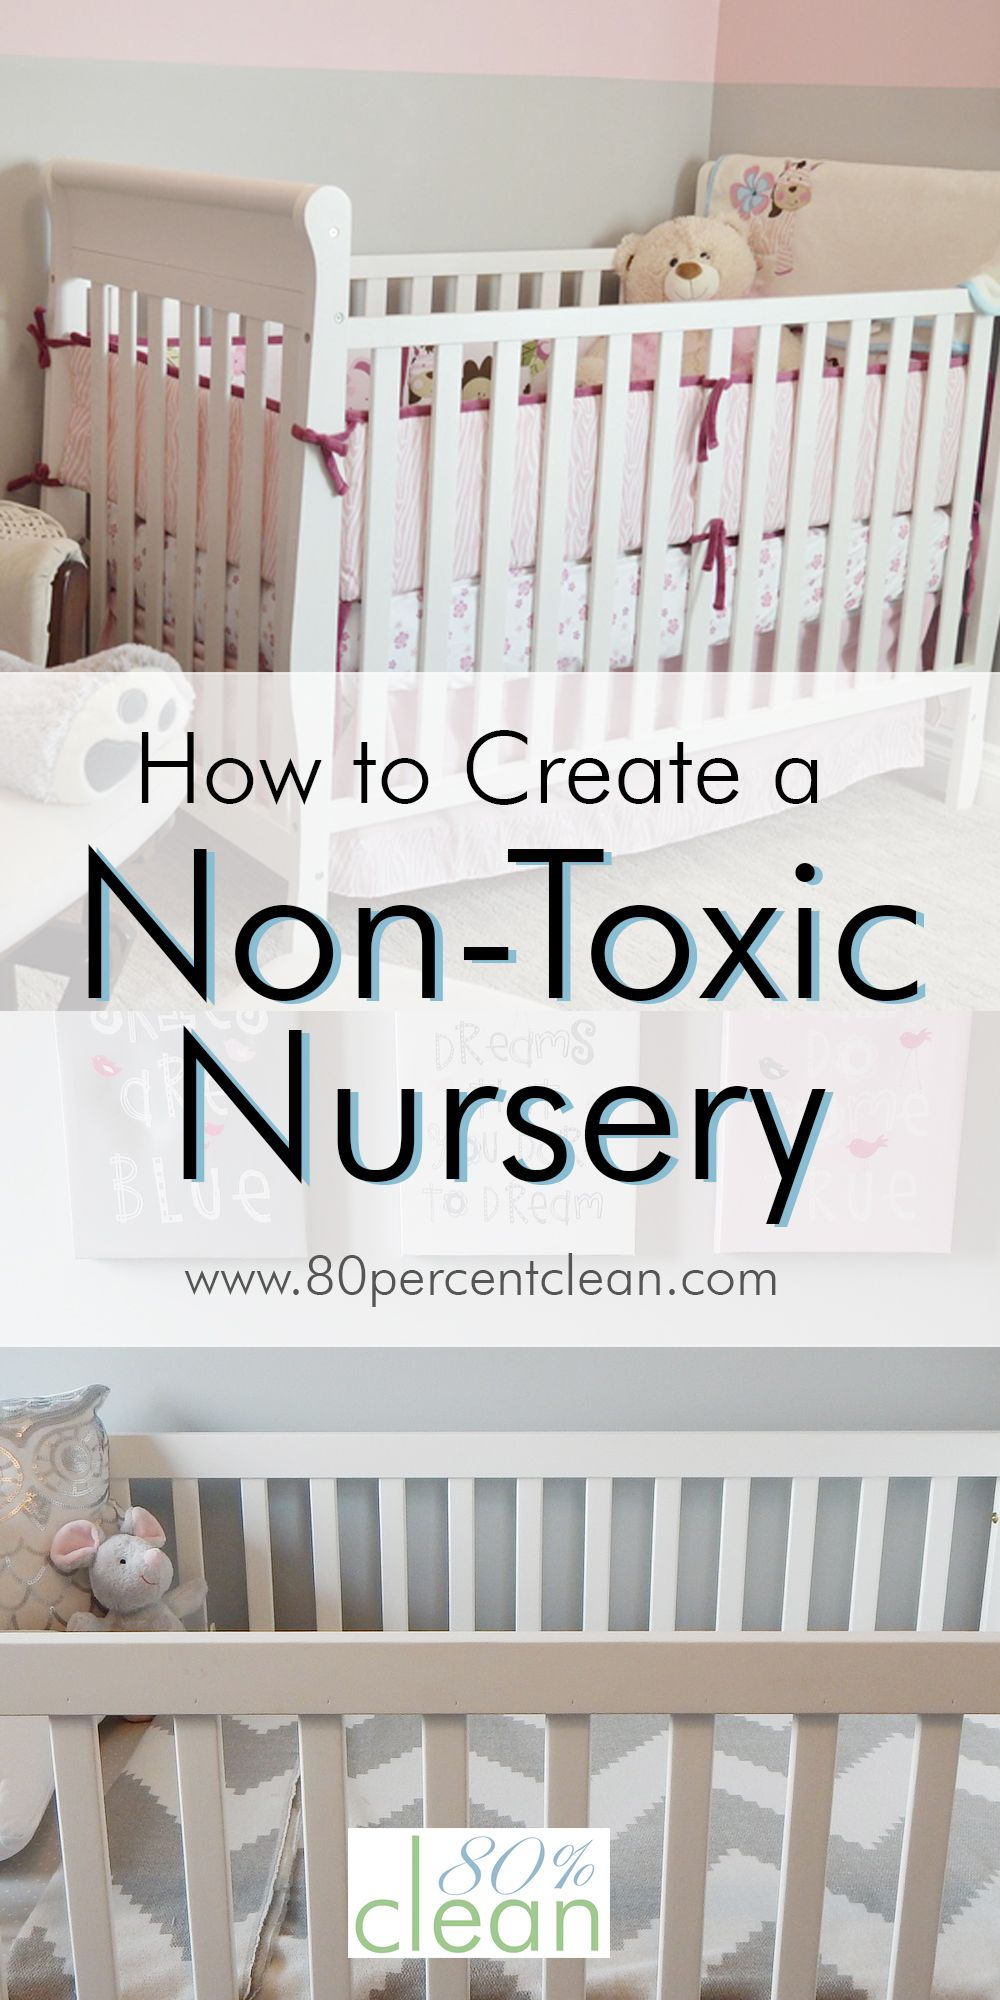 how to create a non toxic nursery crib mattress mattress and crib